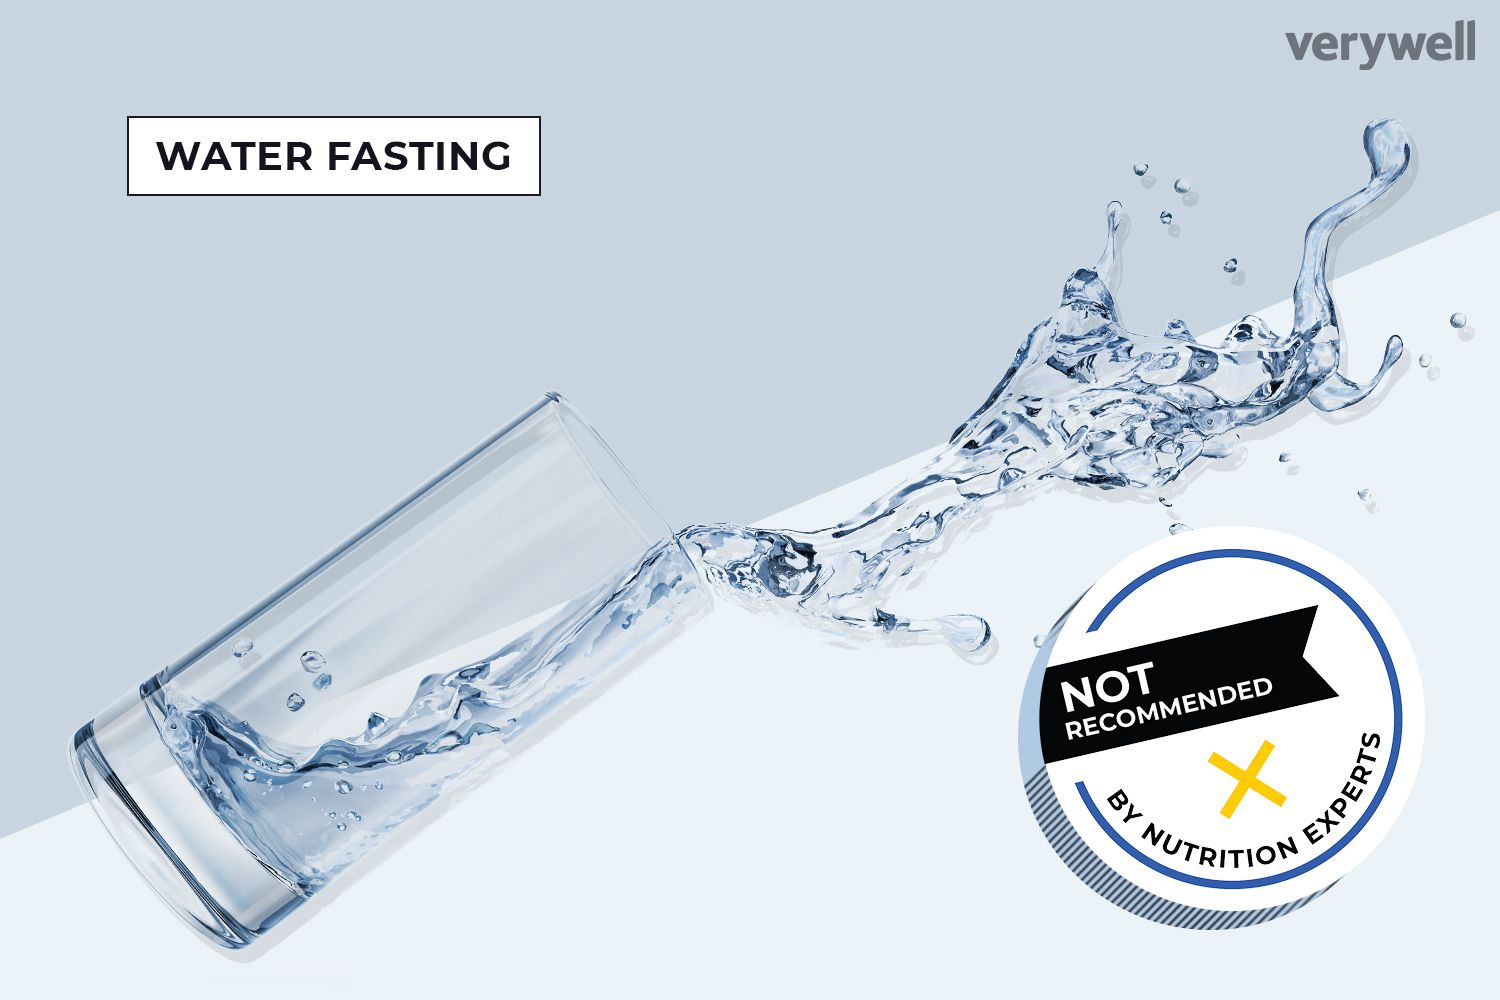 Water safely how fast to Fasting 101: